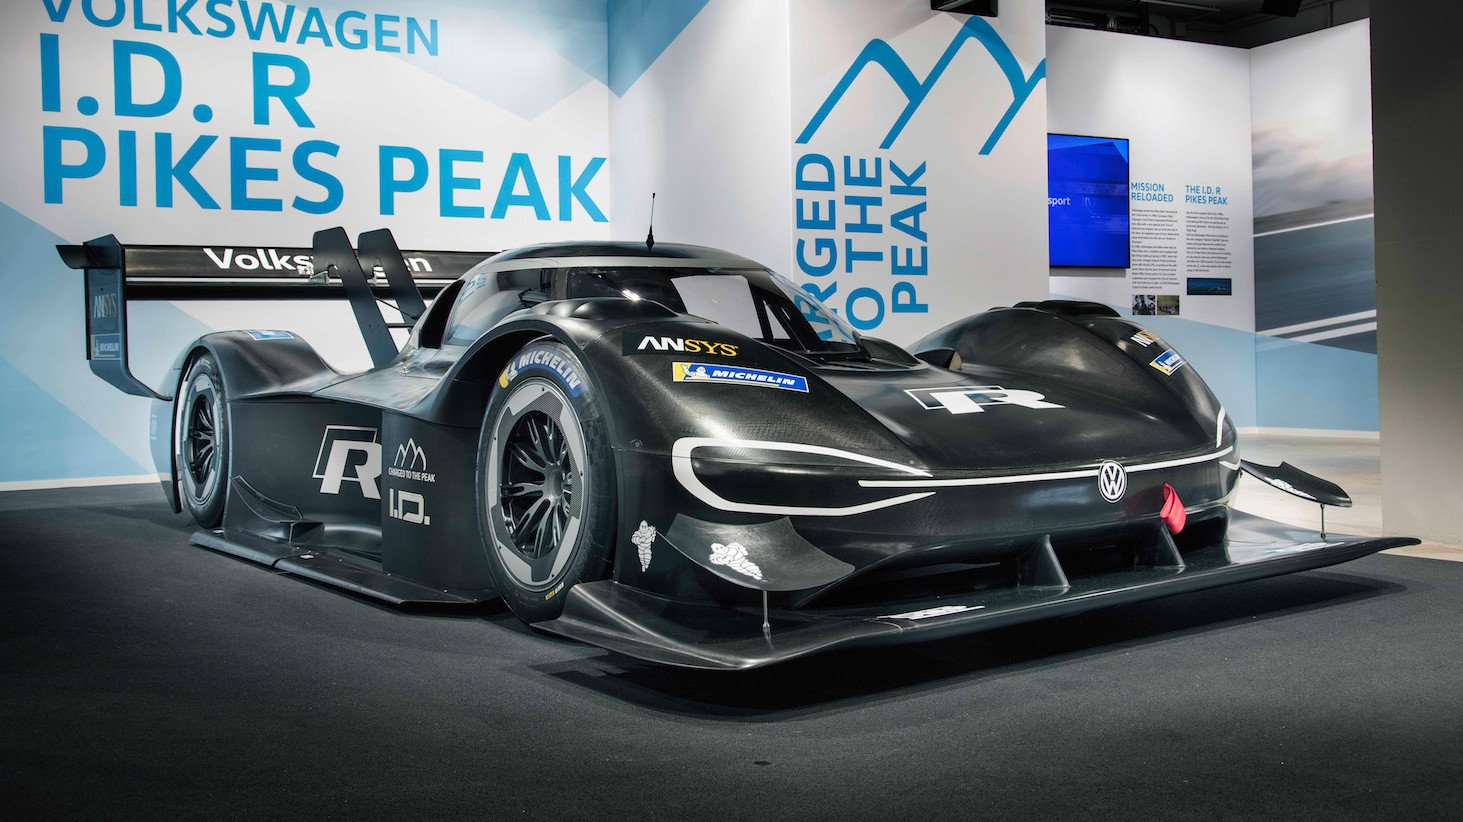 Volkswagen Uses 3D Printing for Pikes Peak Hill Climb Supercar | All3DP